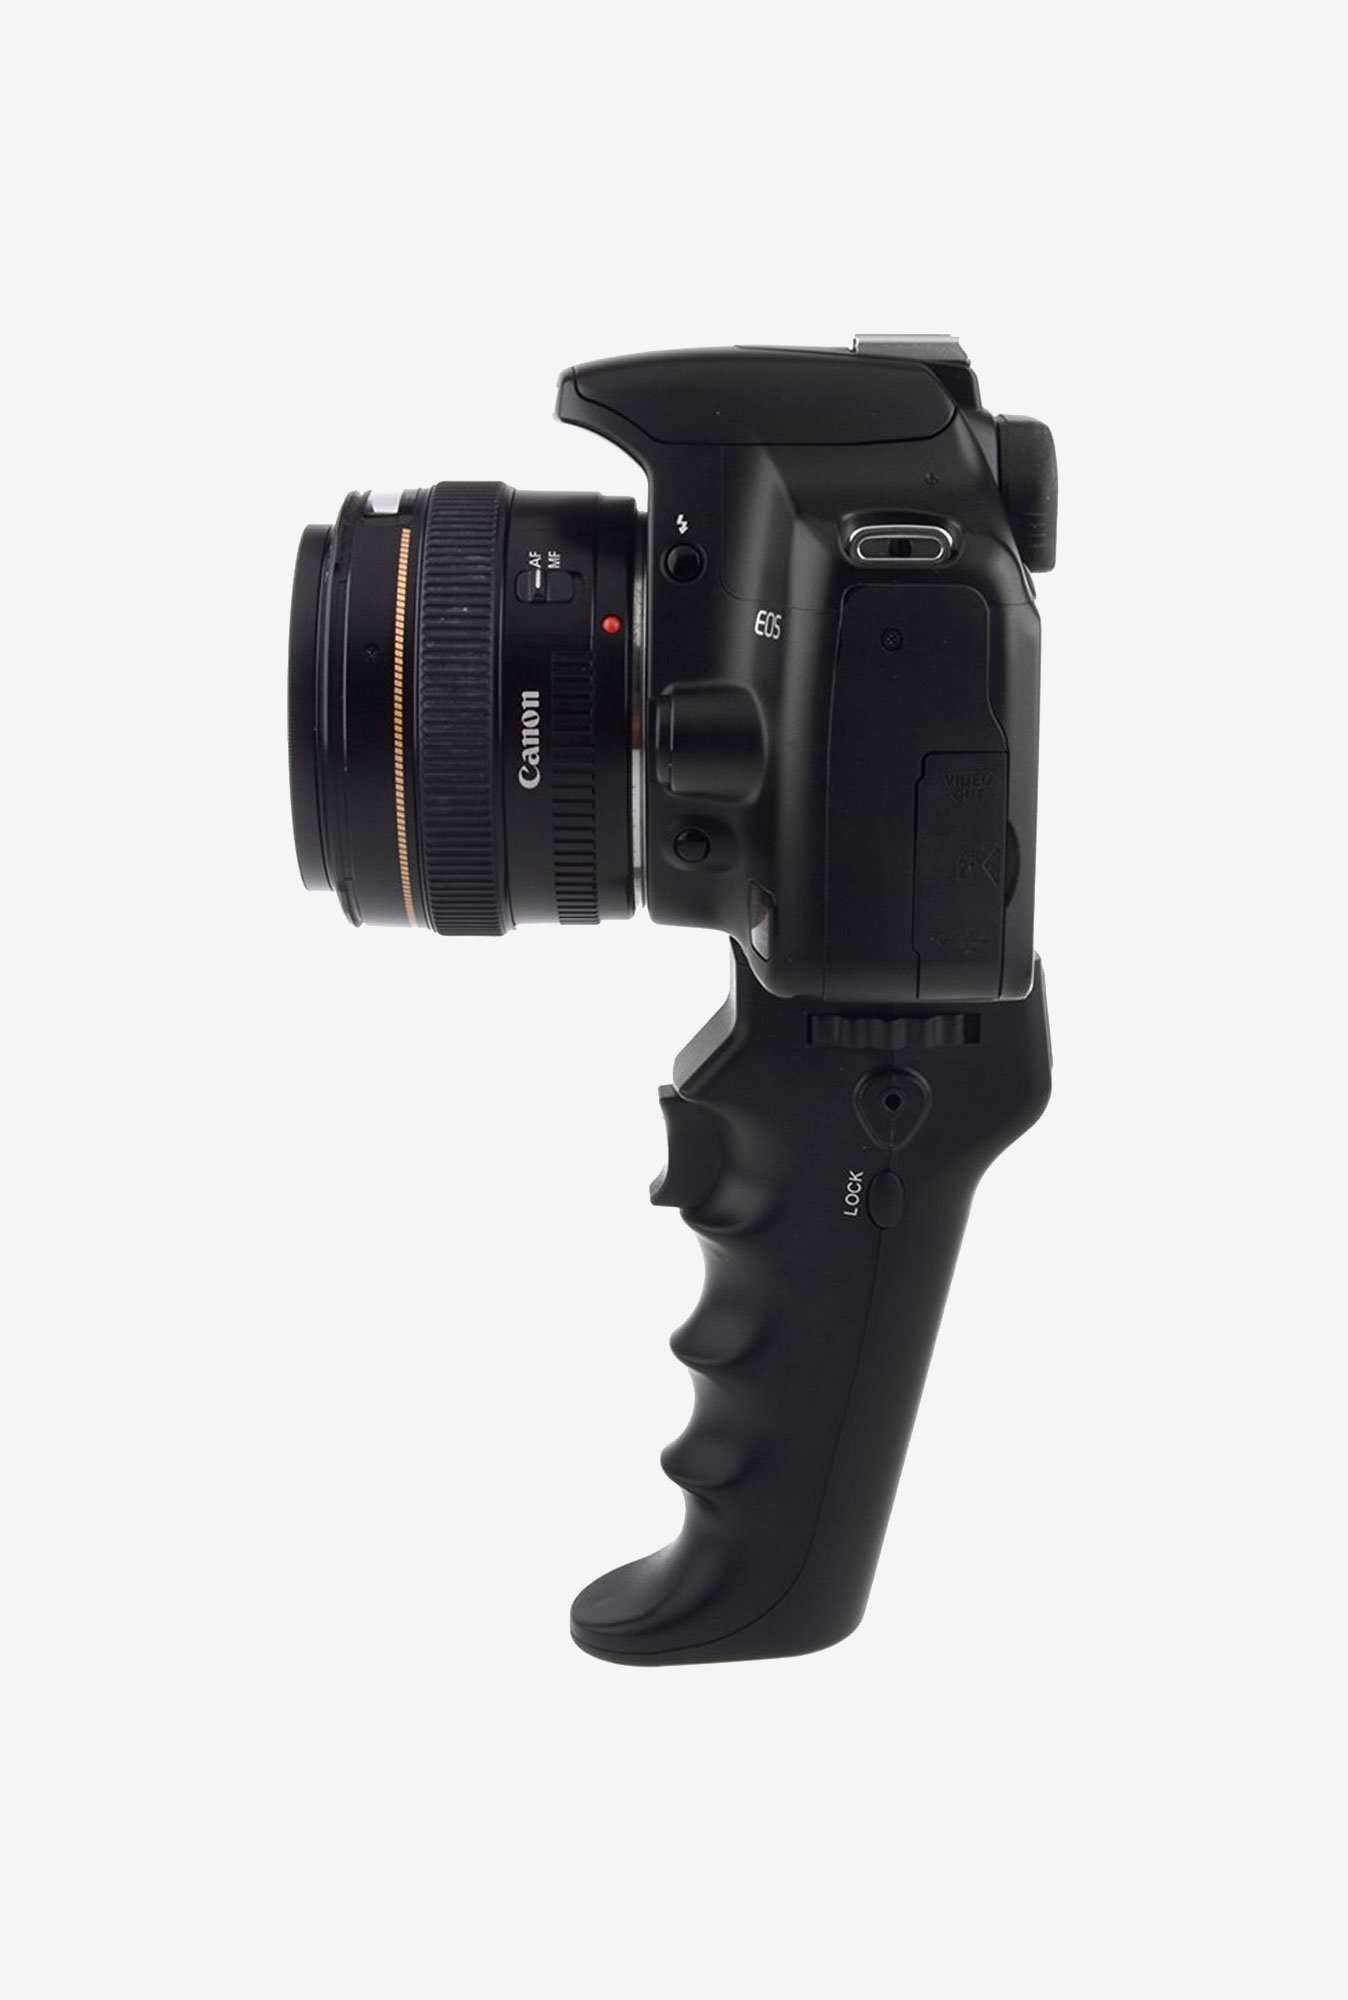 Neewer Professional Handheld Camera Pistol Grip